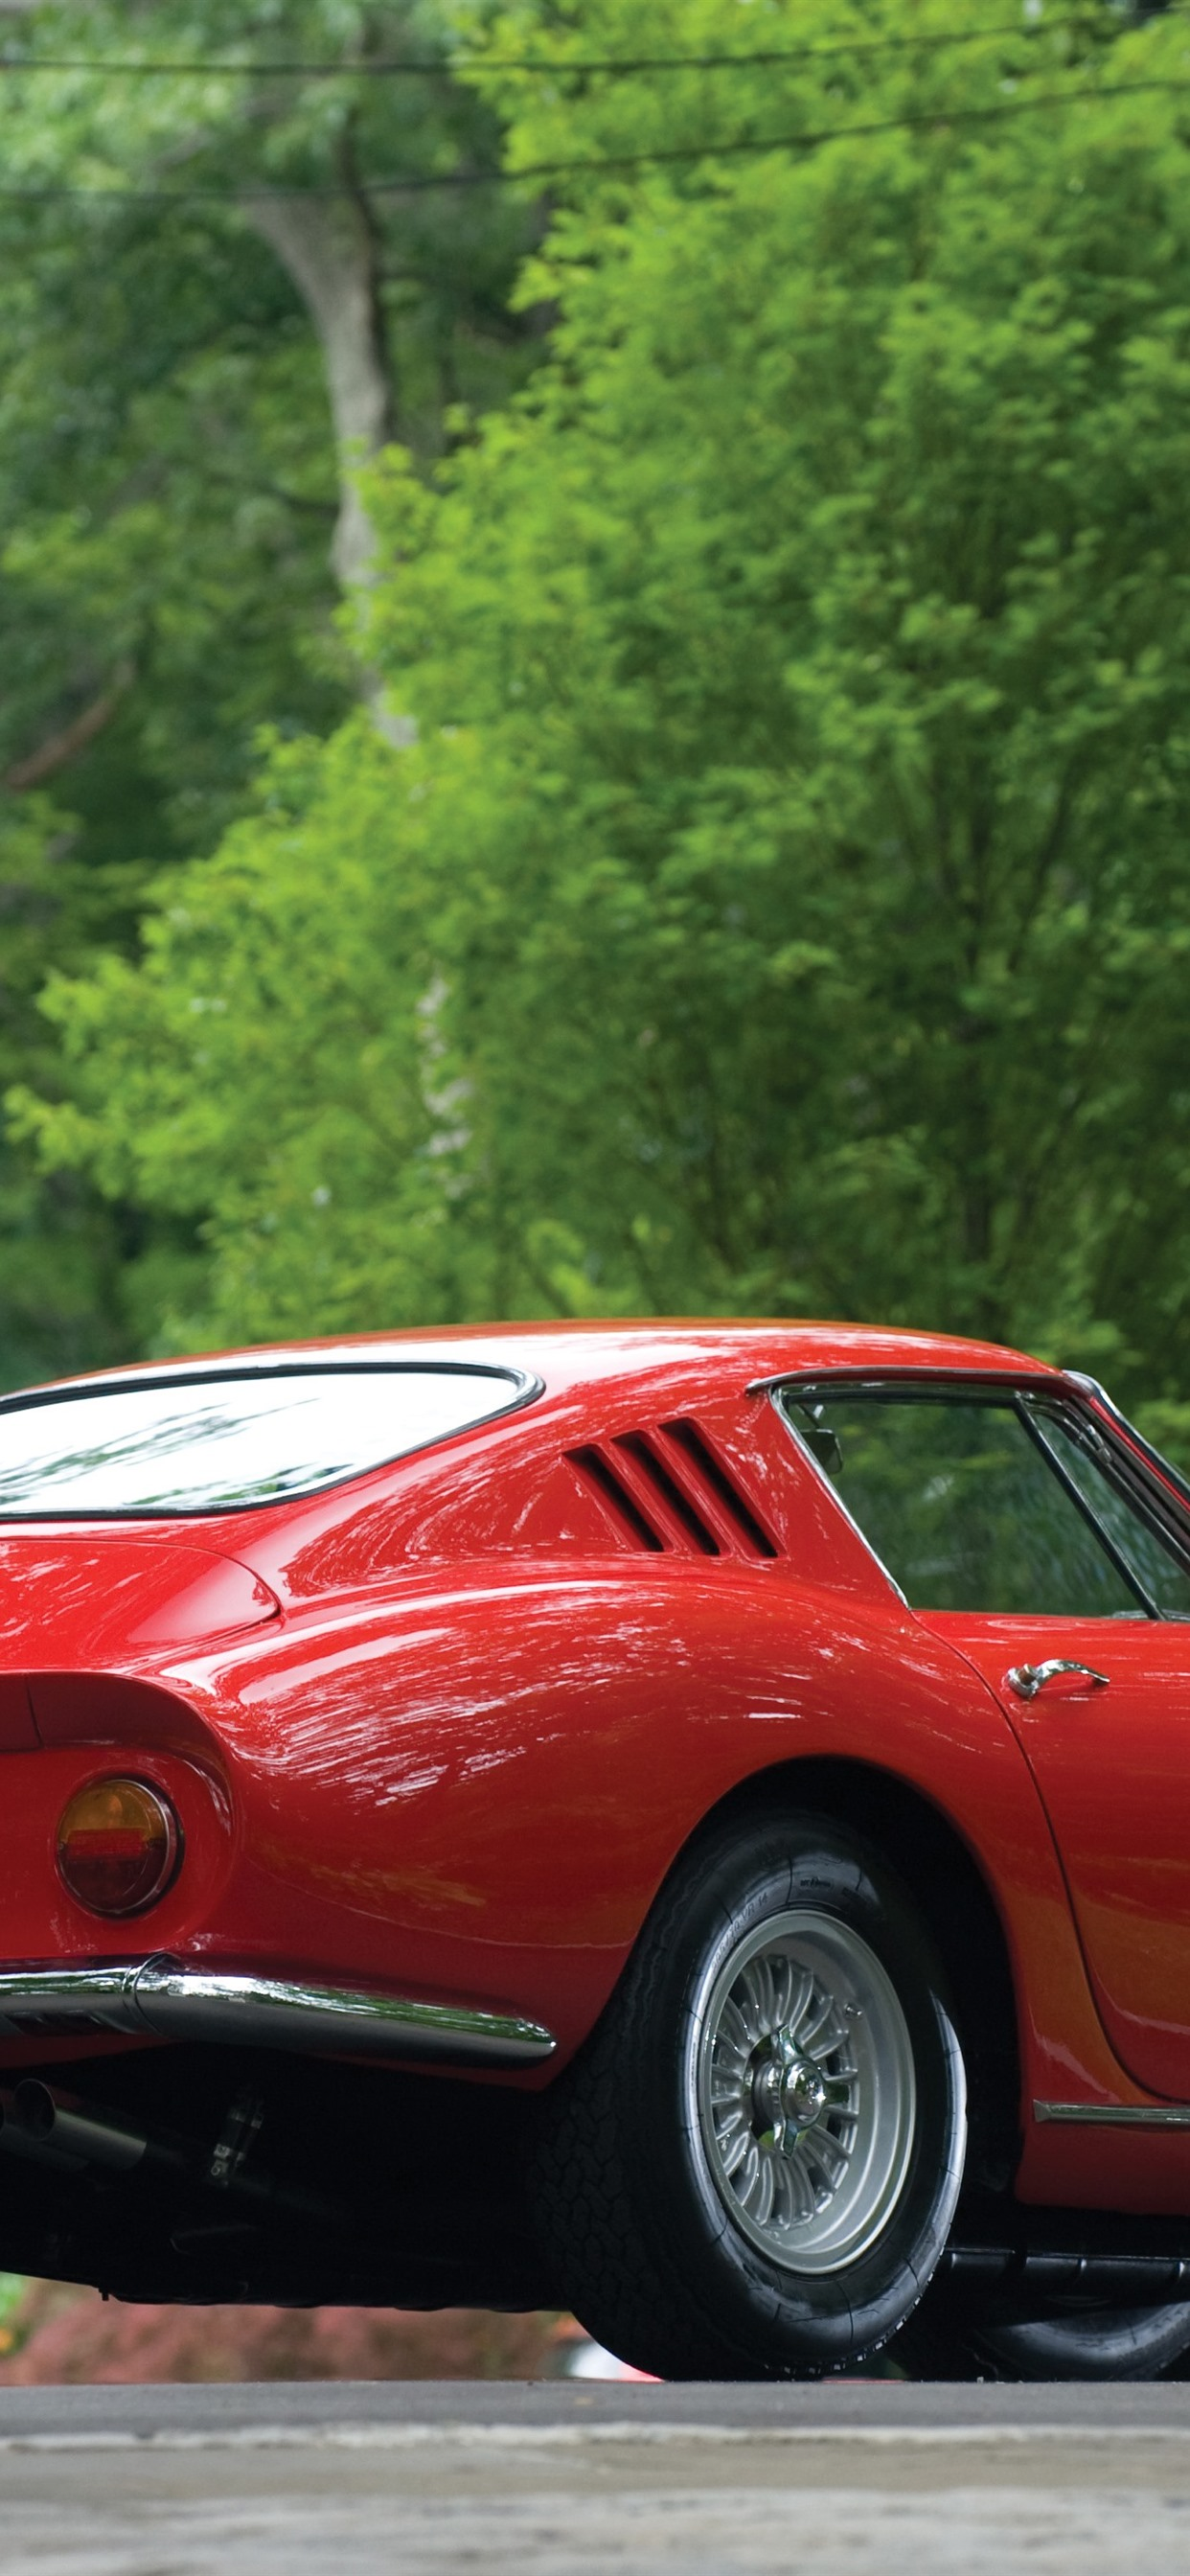 Ferrari Red Classic Car Rear View Green Trees 1242x2688 Iphone 11 Pro Xs Max Wallpaper Background Picture Image